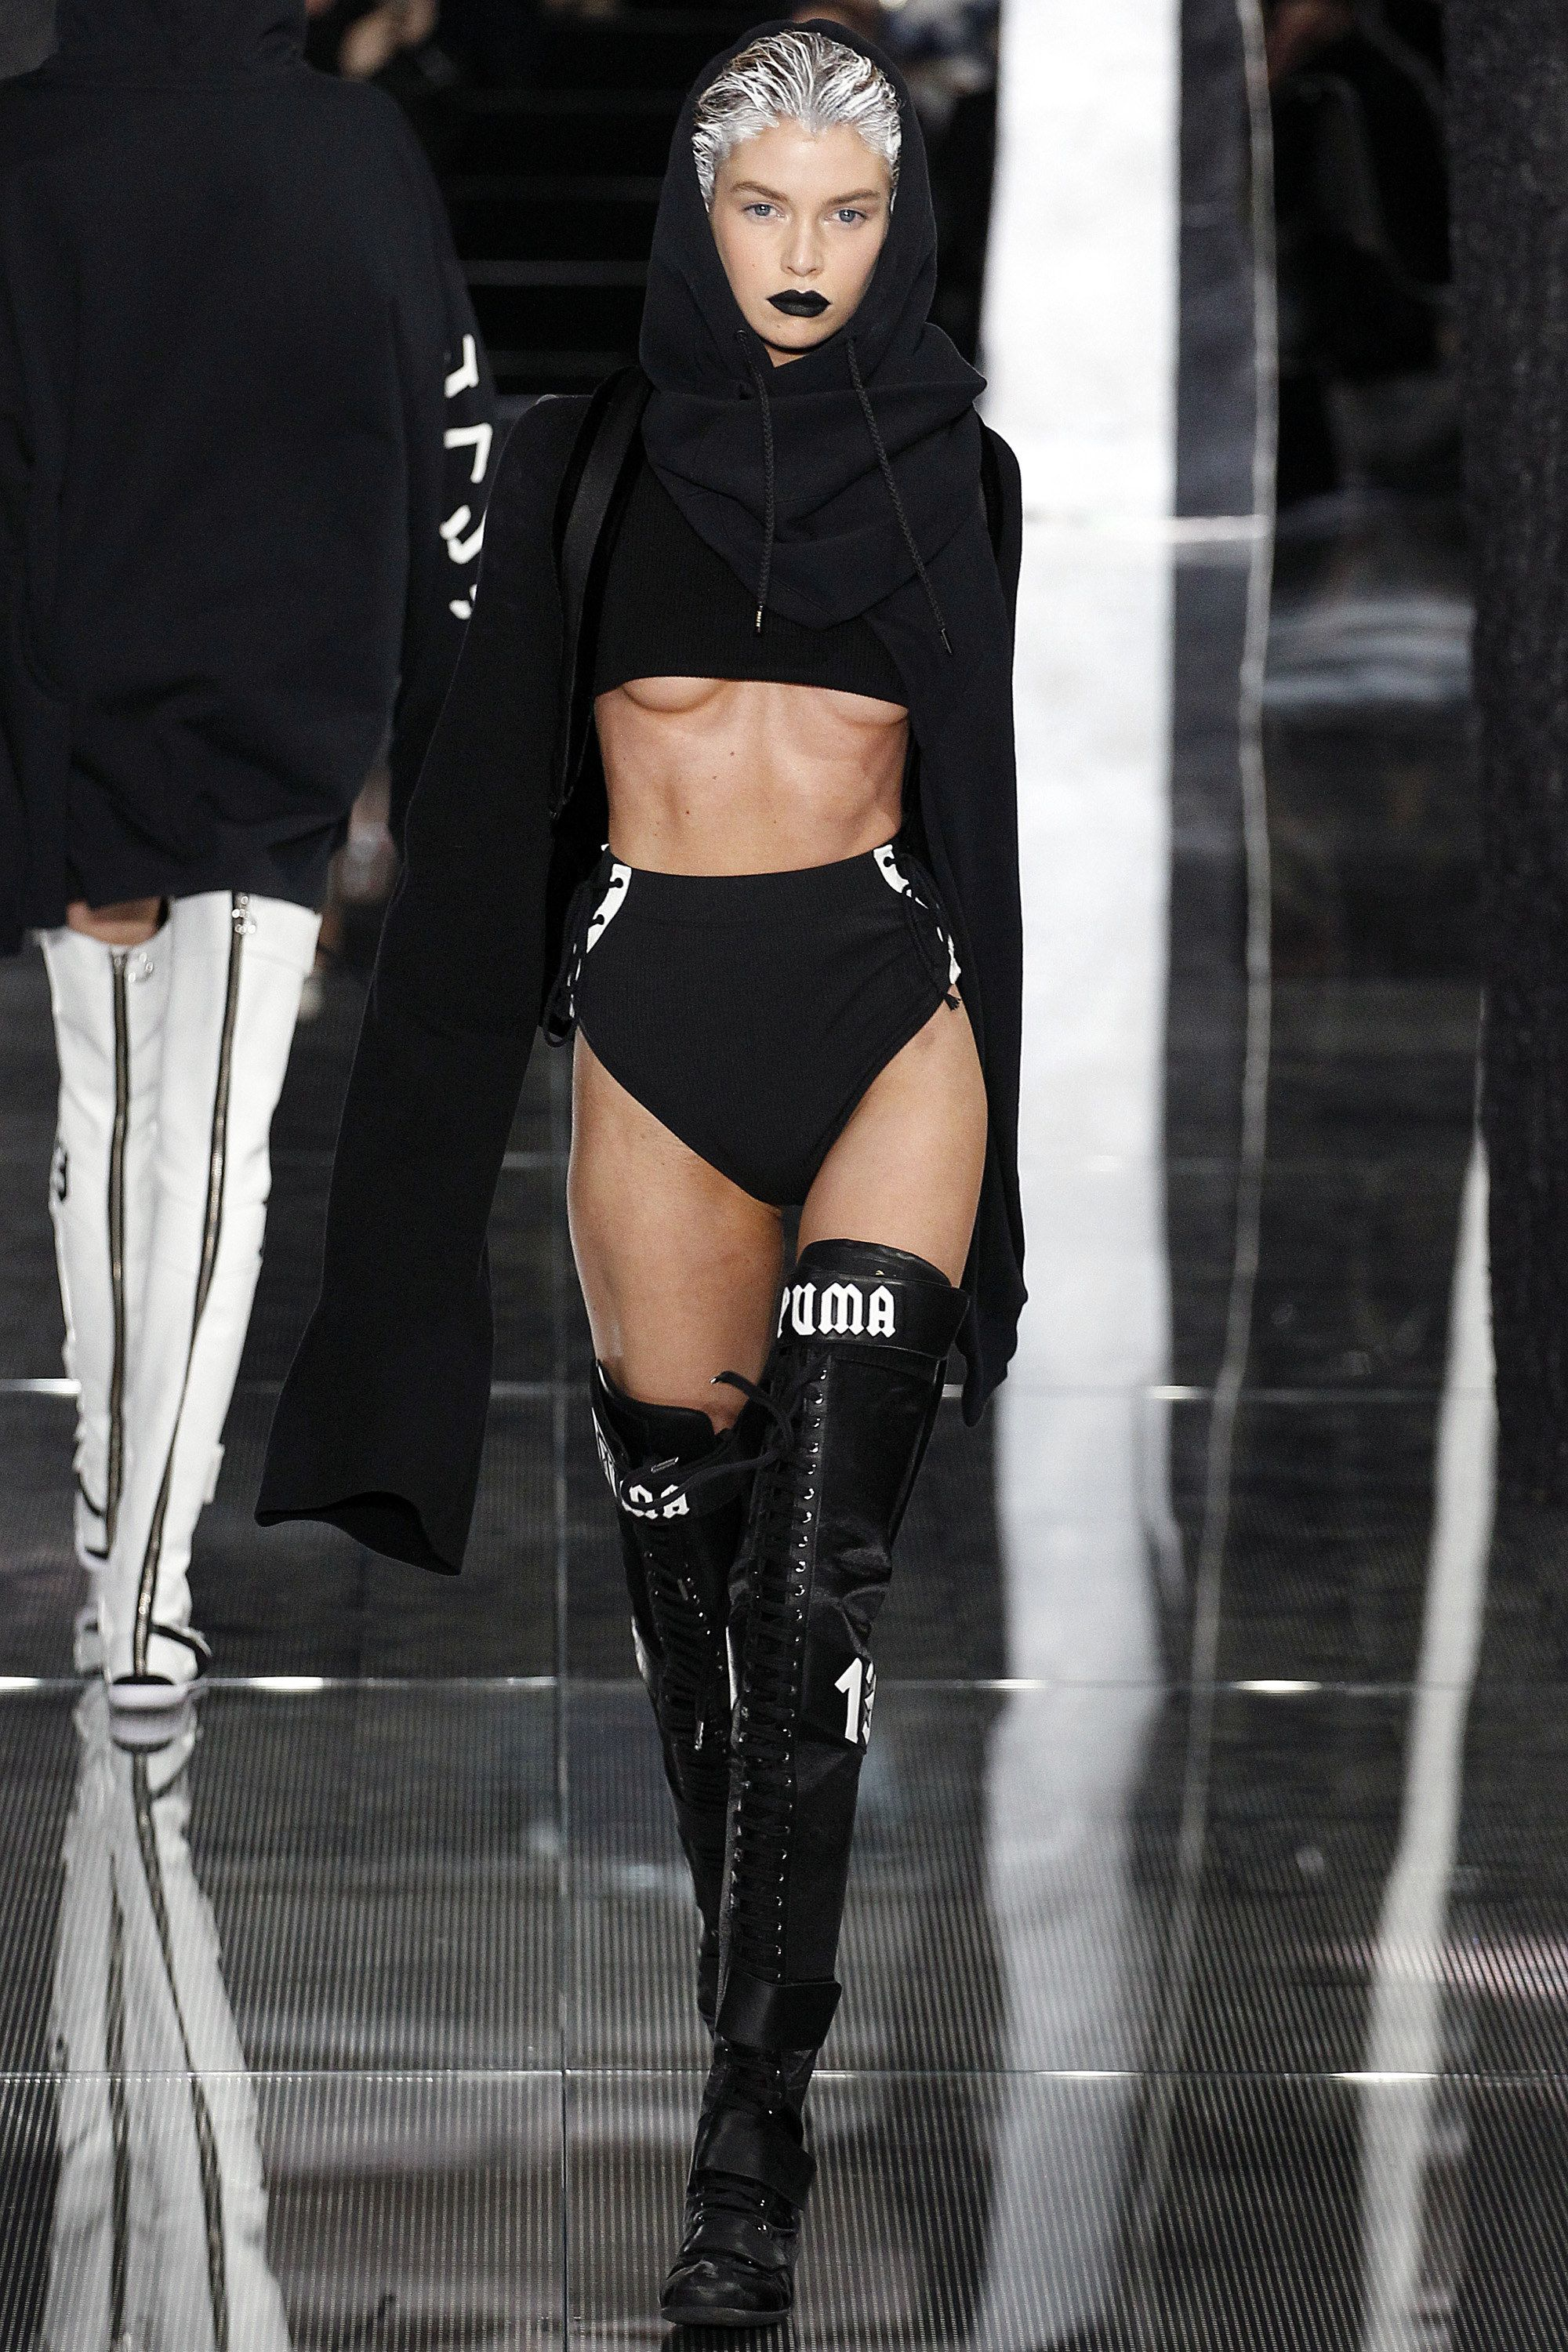 Fenty x Puma Fall 2016 Ready to Wear Fashion Show | Ropa de